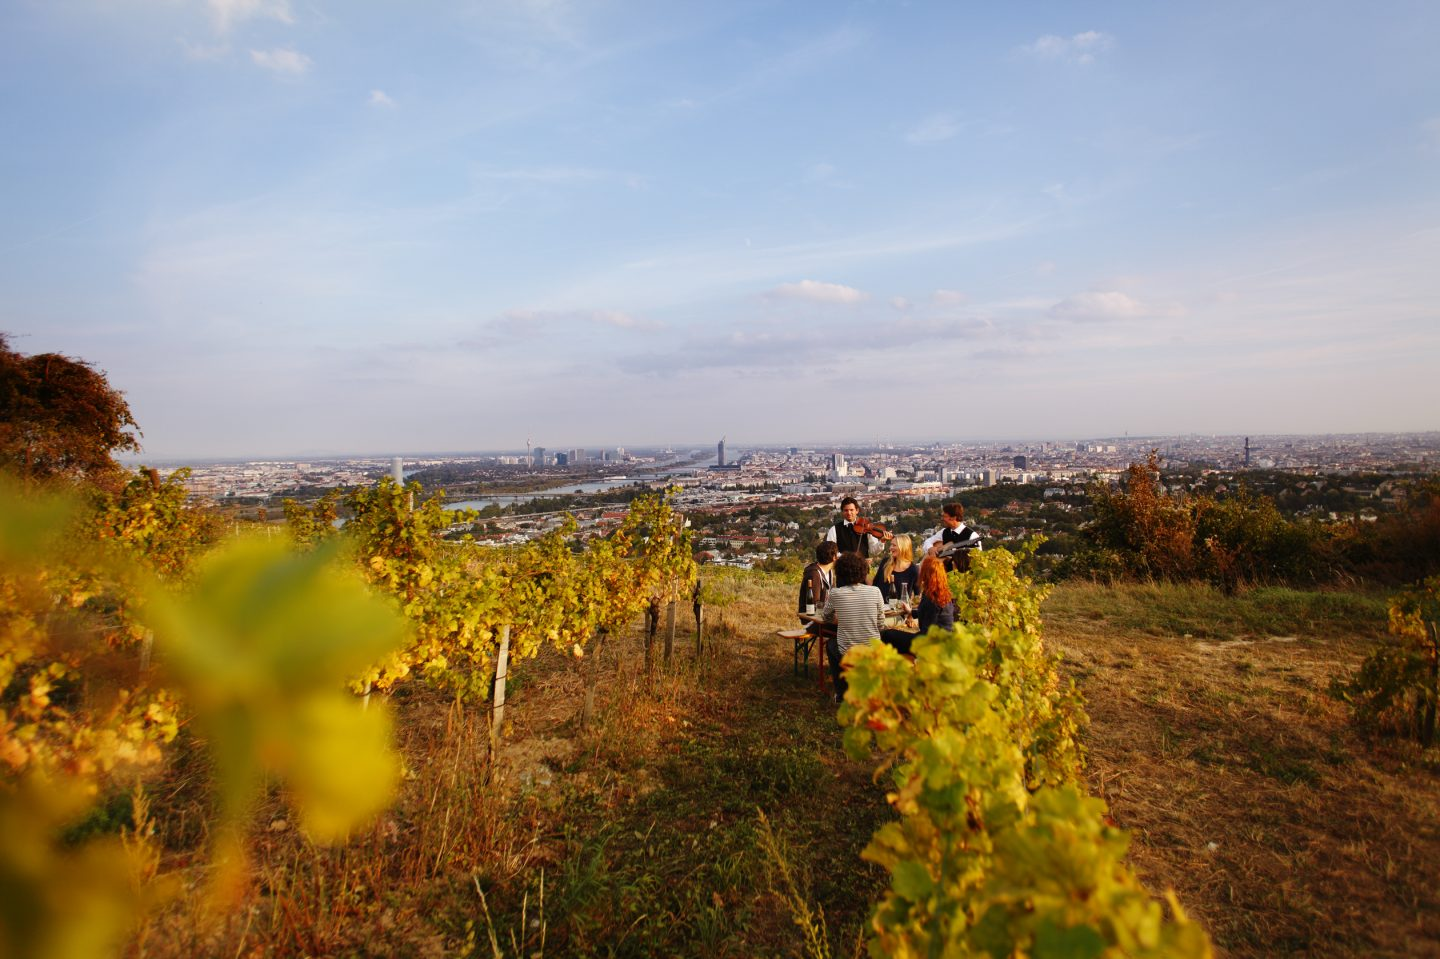 © WienTourismus Peter Rigaud_Wieninger vineyard on the Nussberg